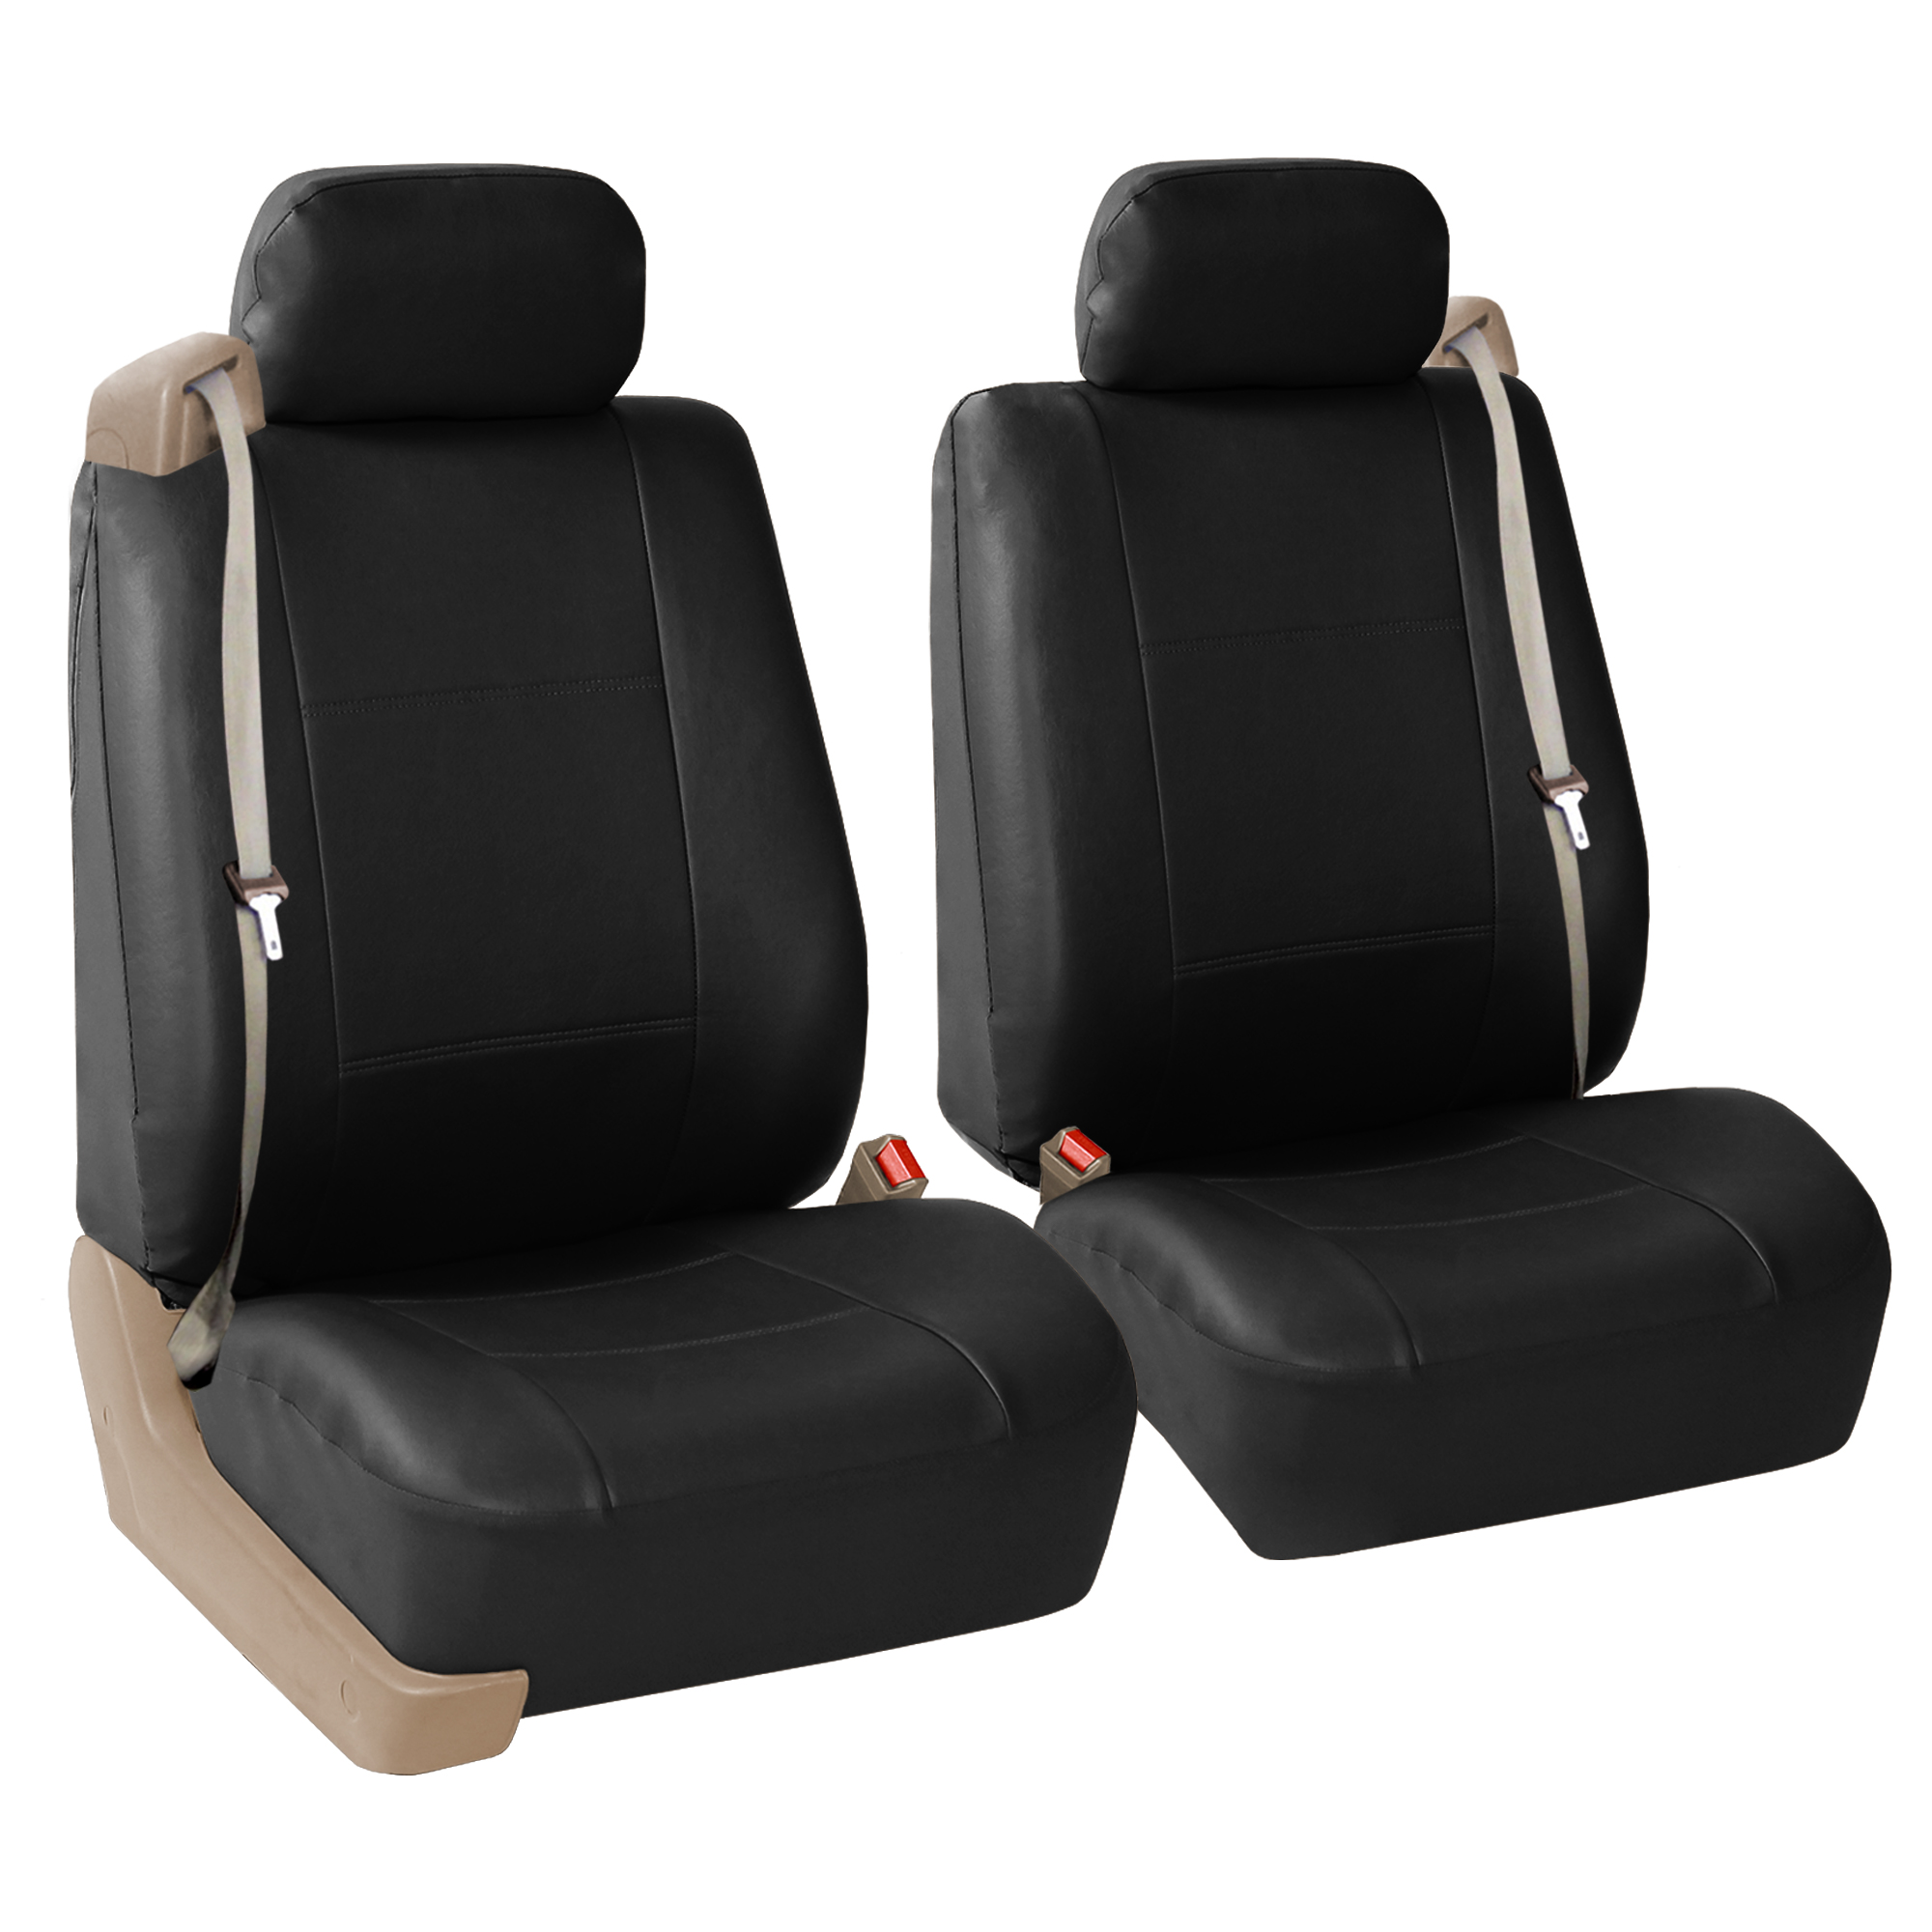 FH Group Integrated Seatbelt Seat Covers for Sedan, SUV, Van, Truck, Two Front Buckets, Black